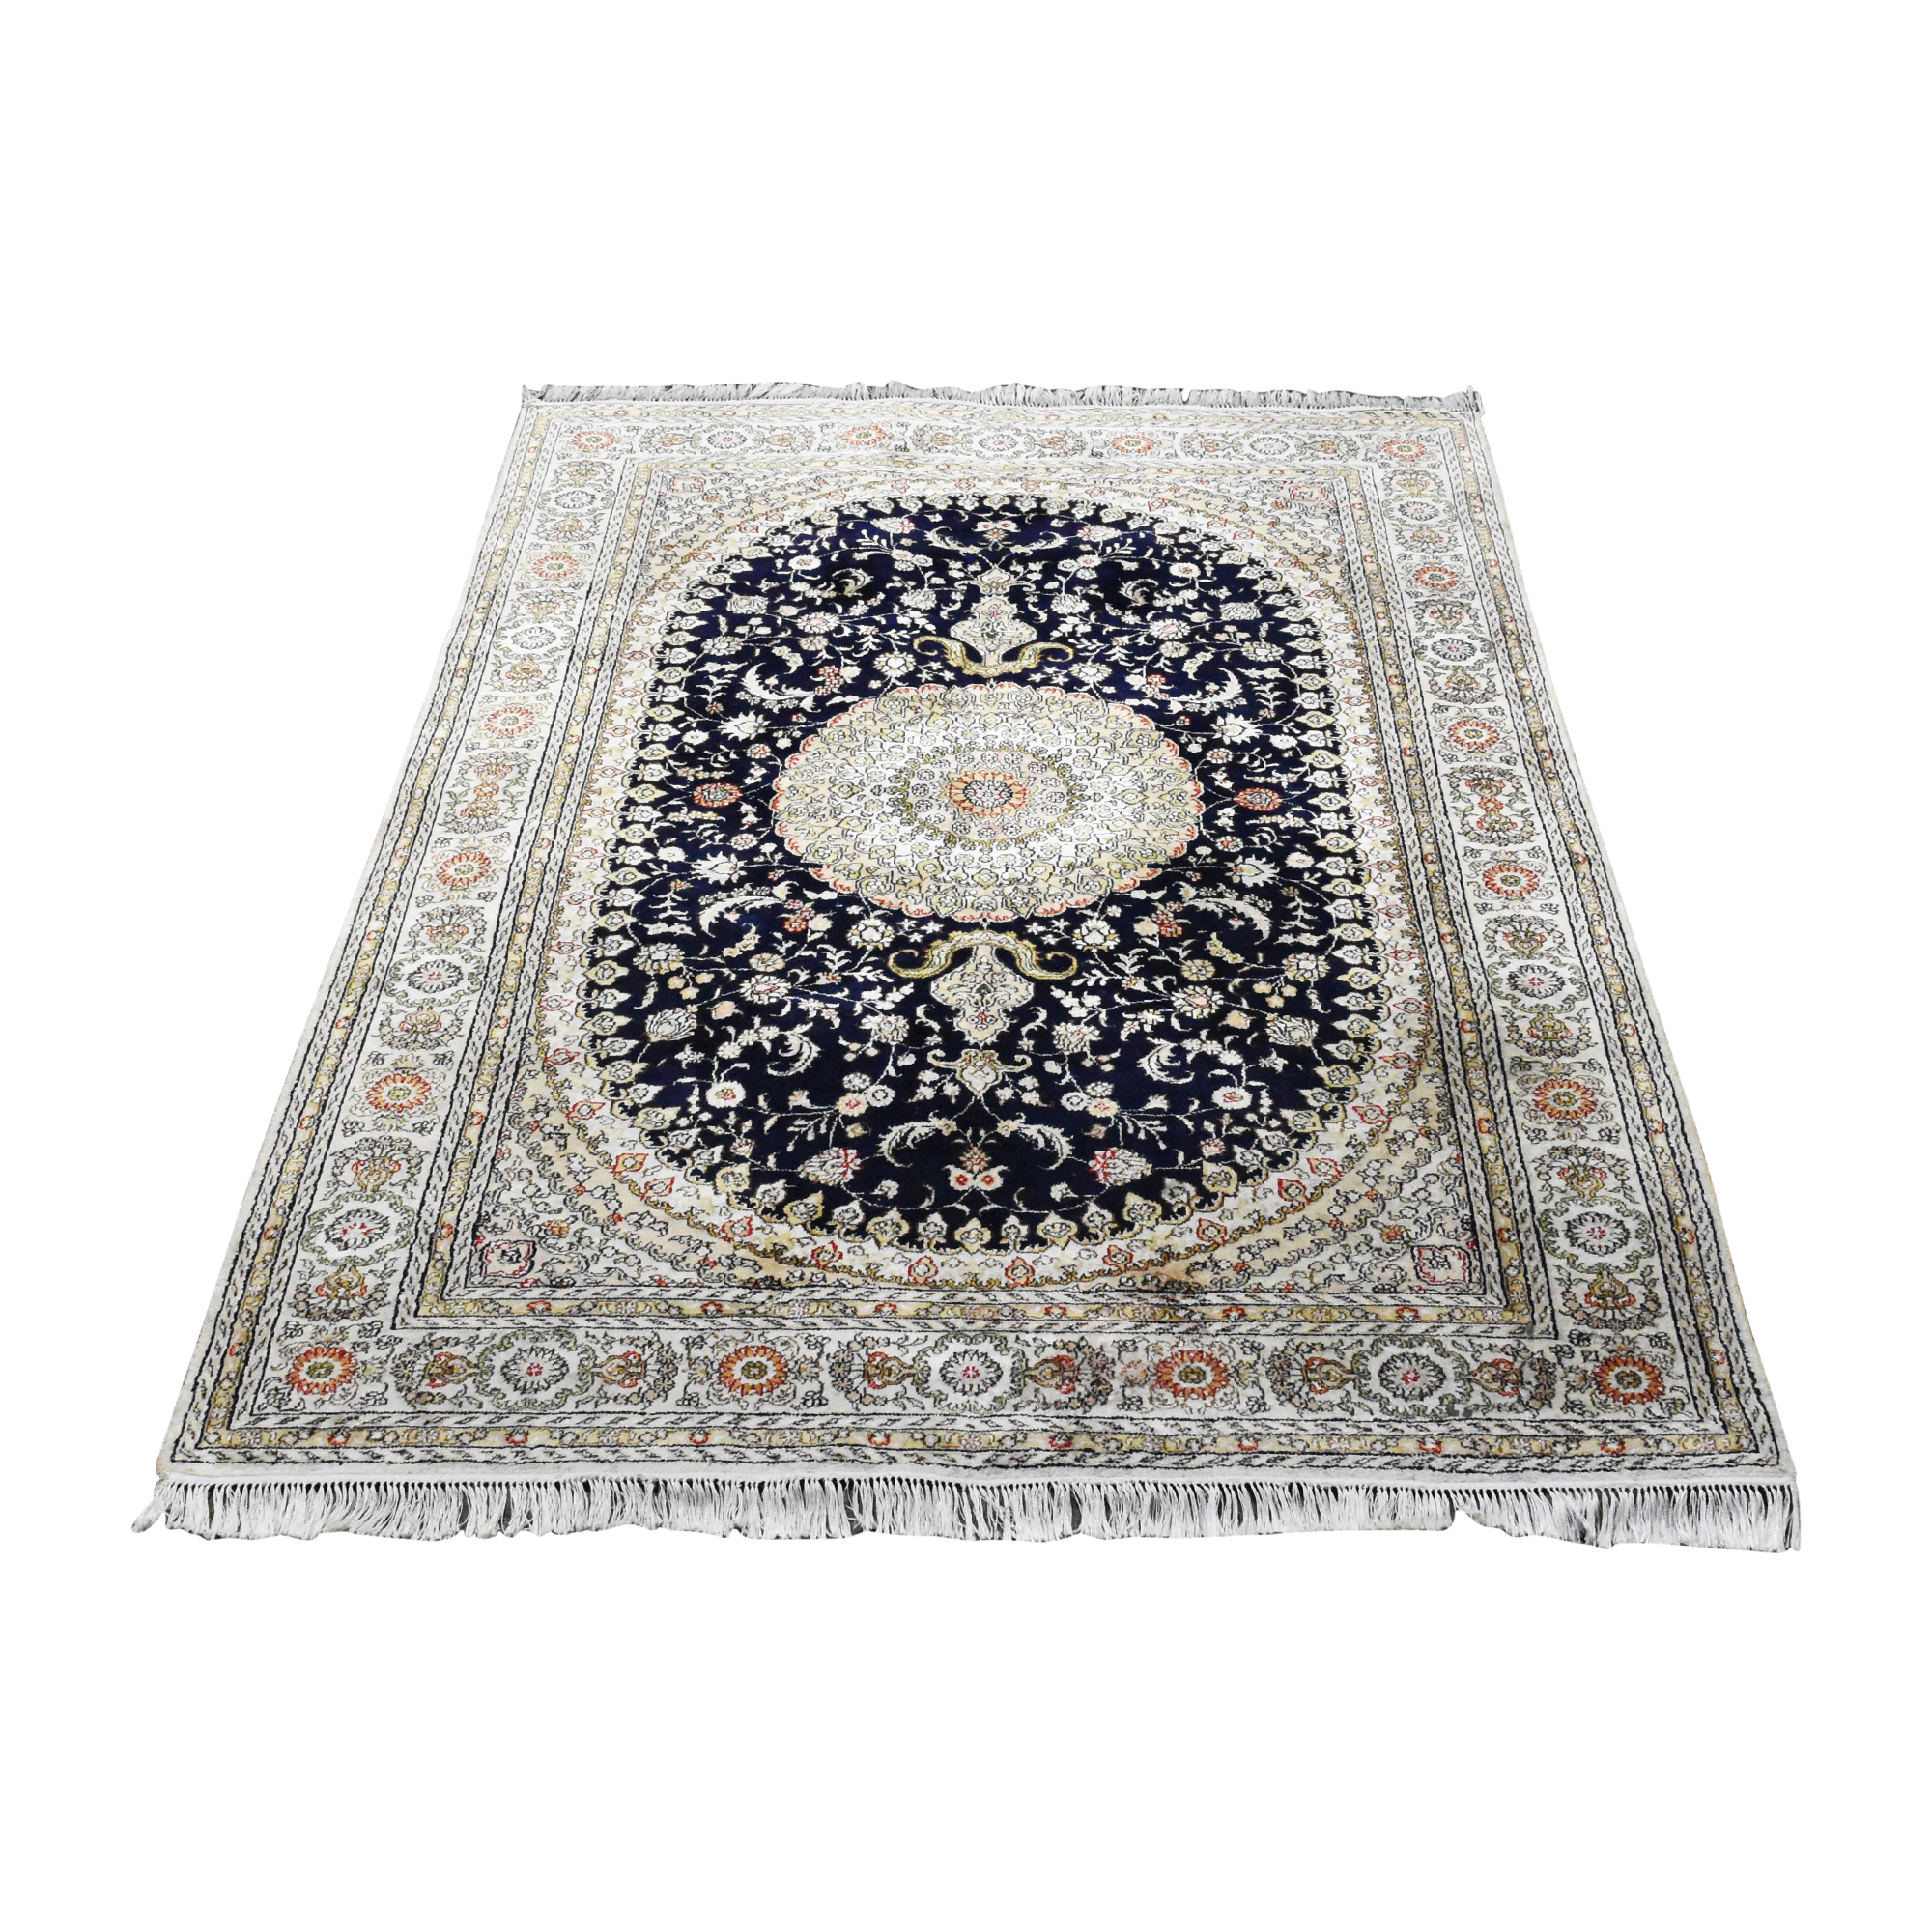 Moroccan-Style Fringed Area Rug dimensions